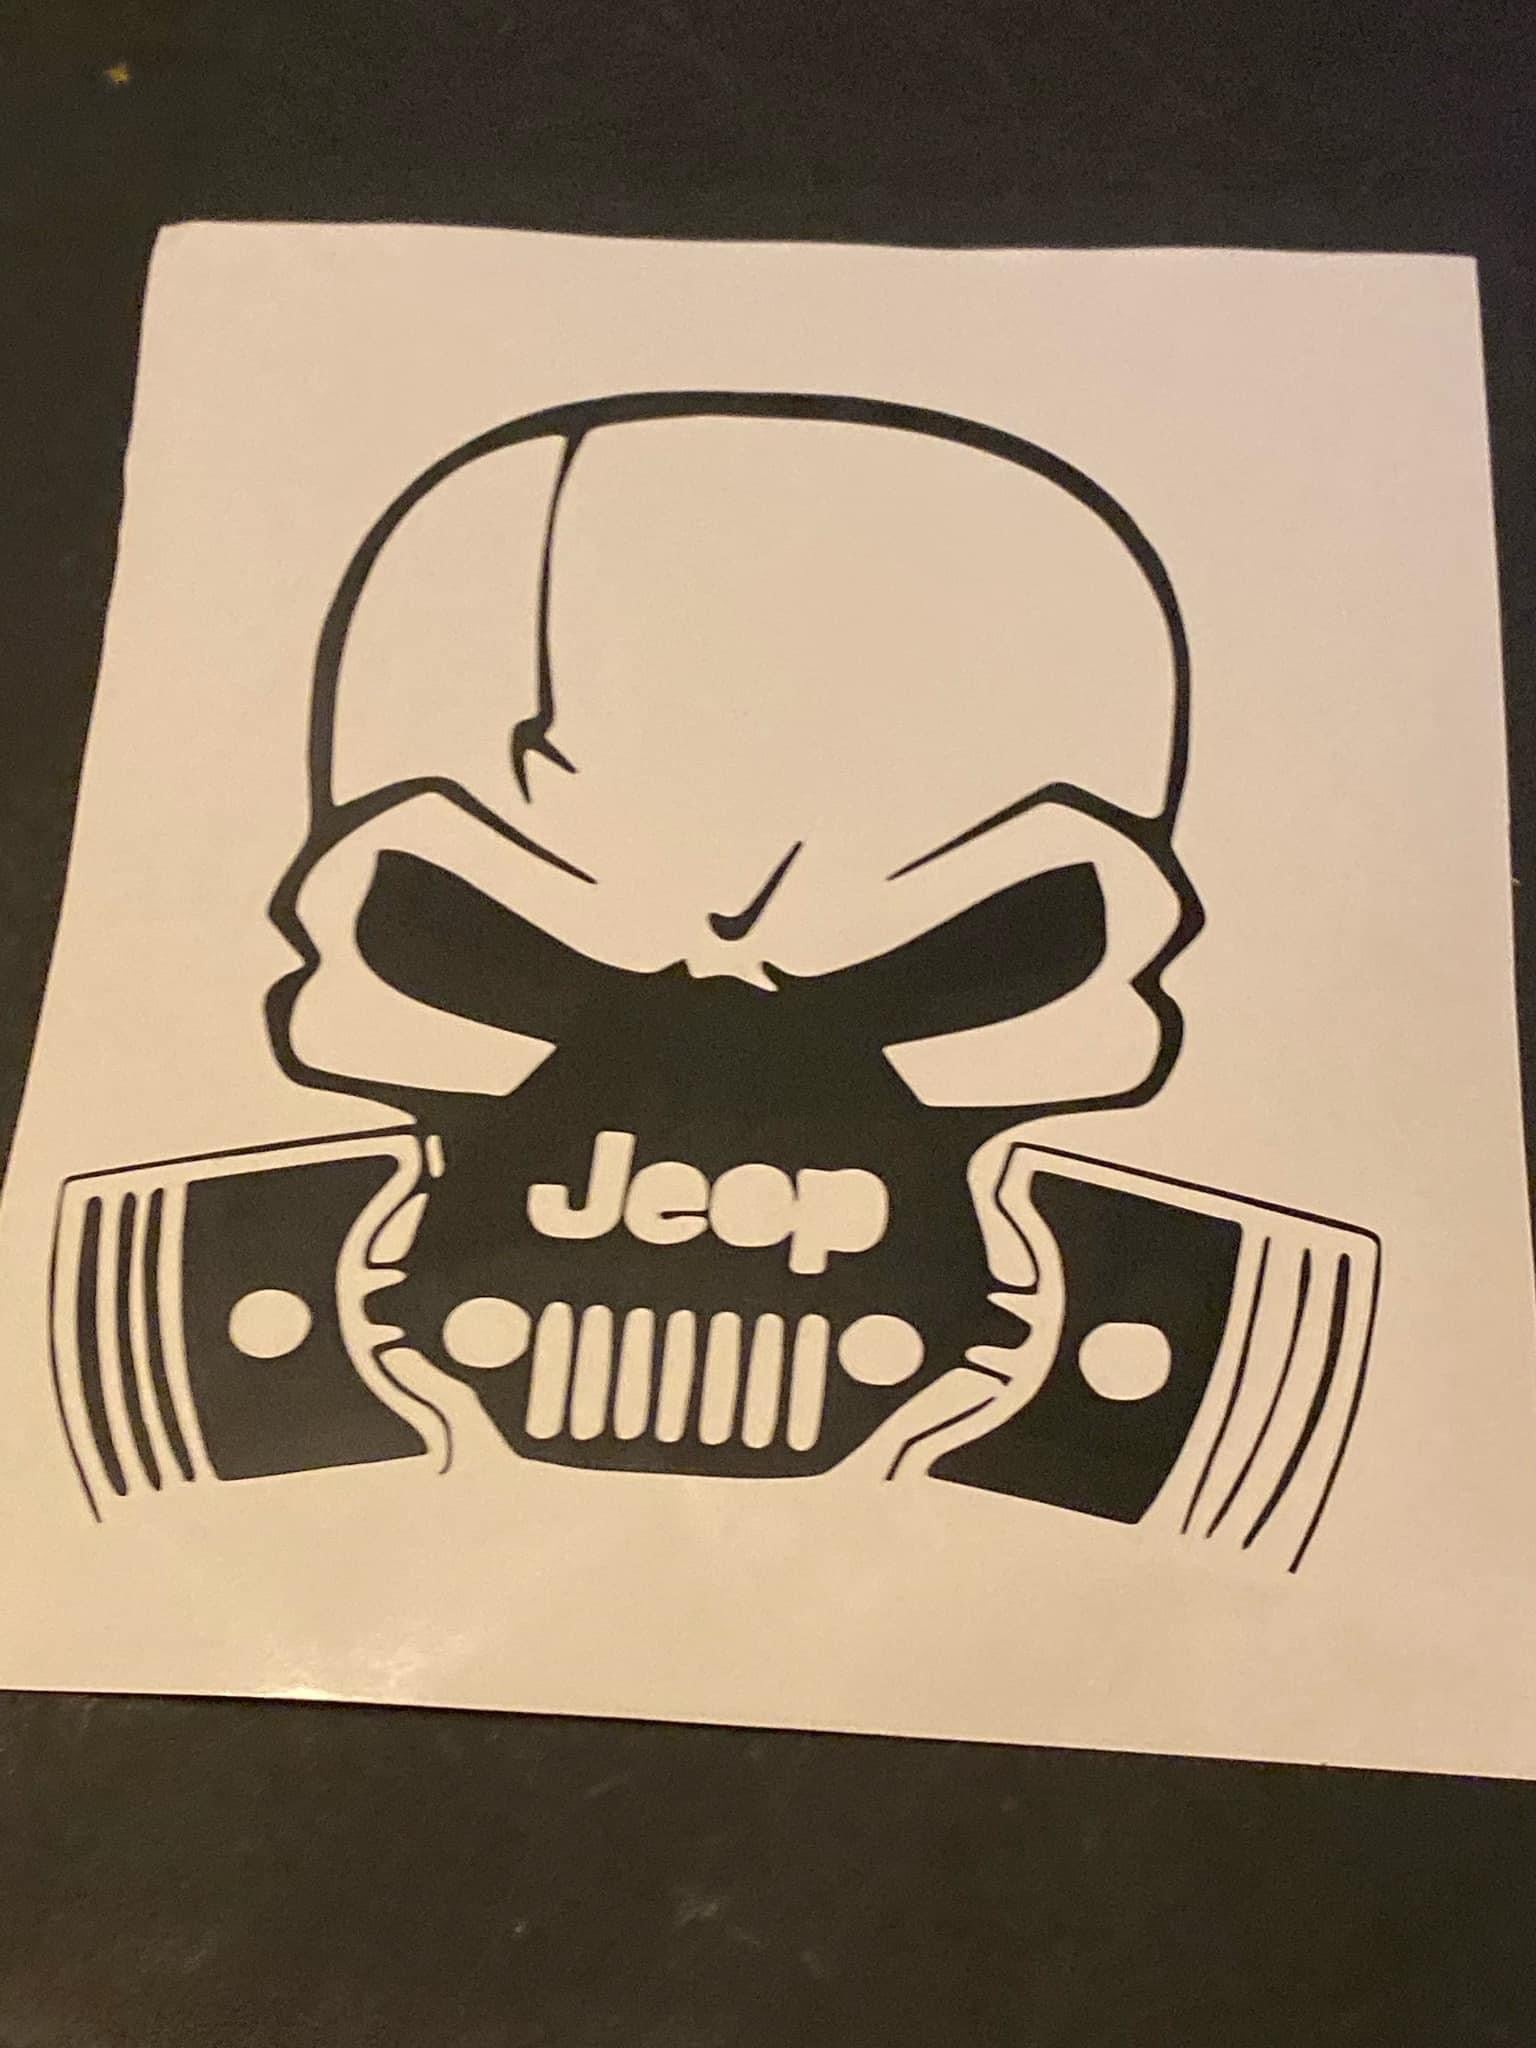 Jeep Skull decal